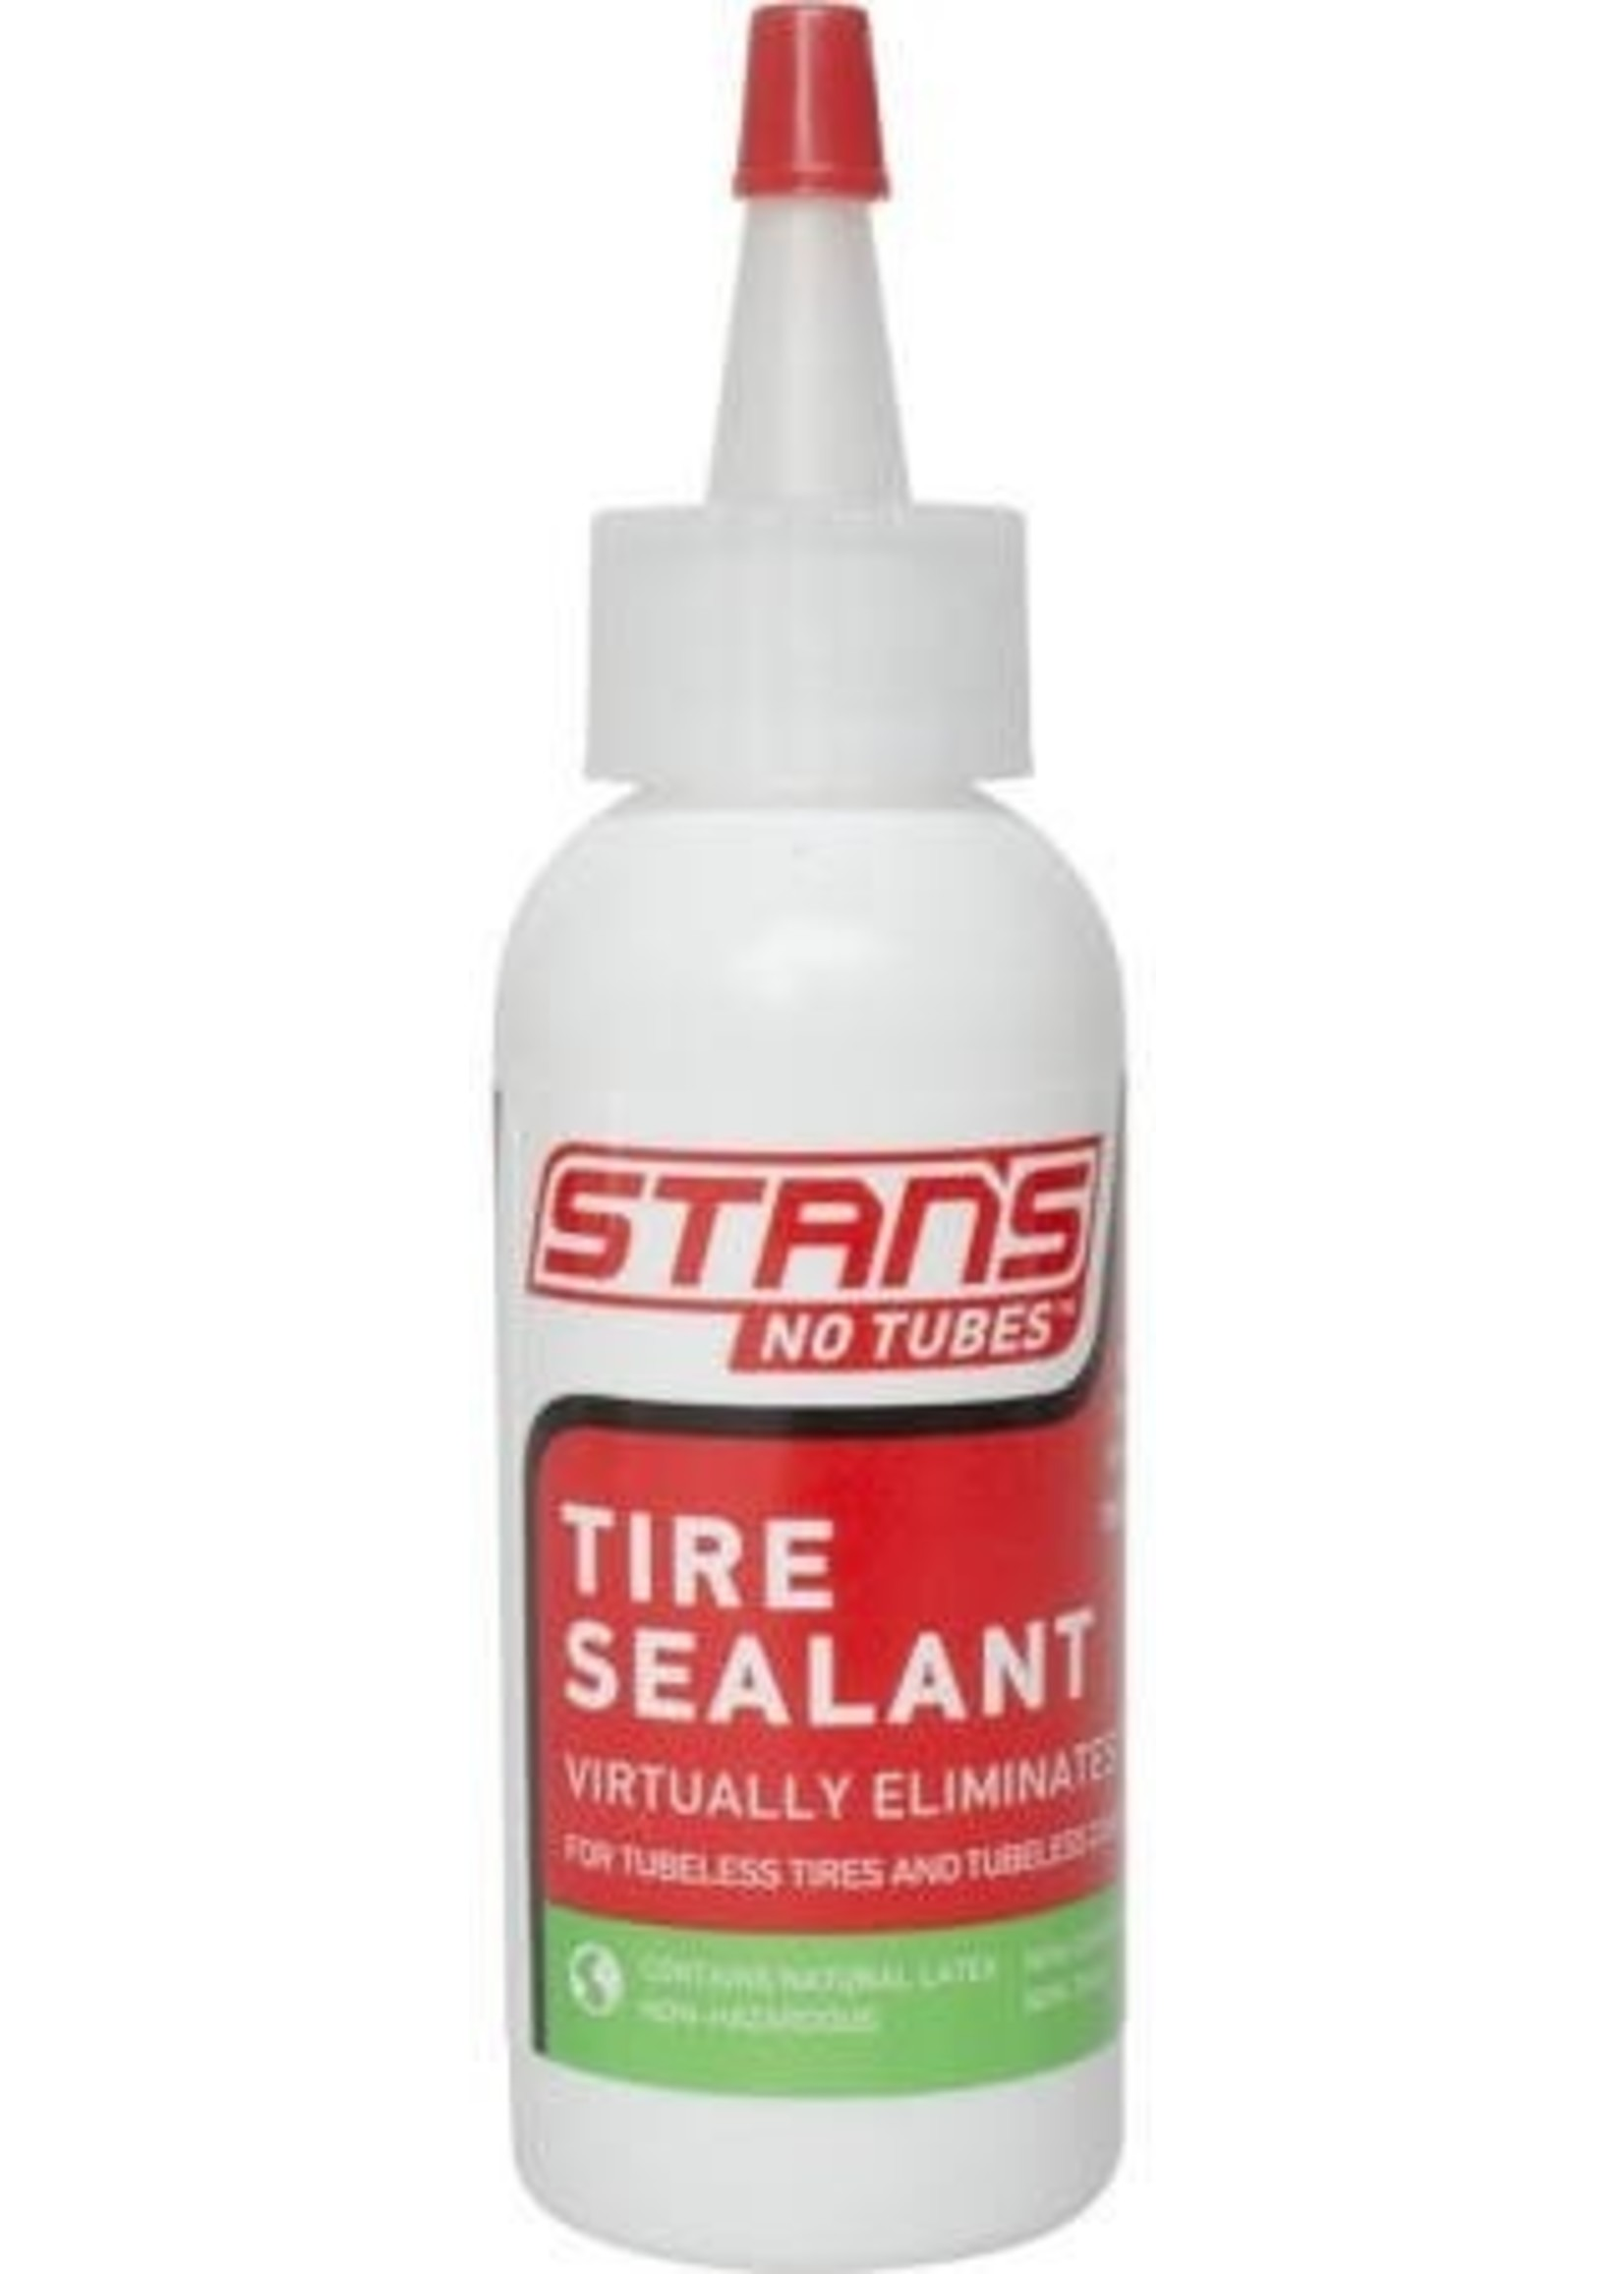 Stan's N Tubes, Pre-mixed sea/ant, 2oz